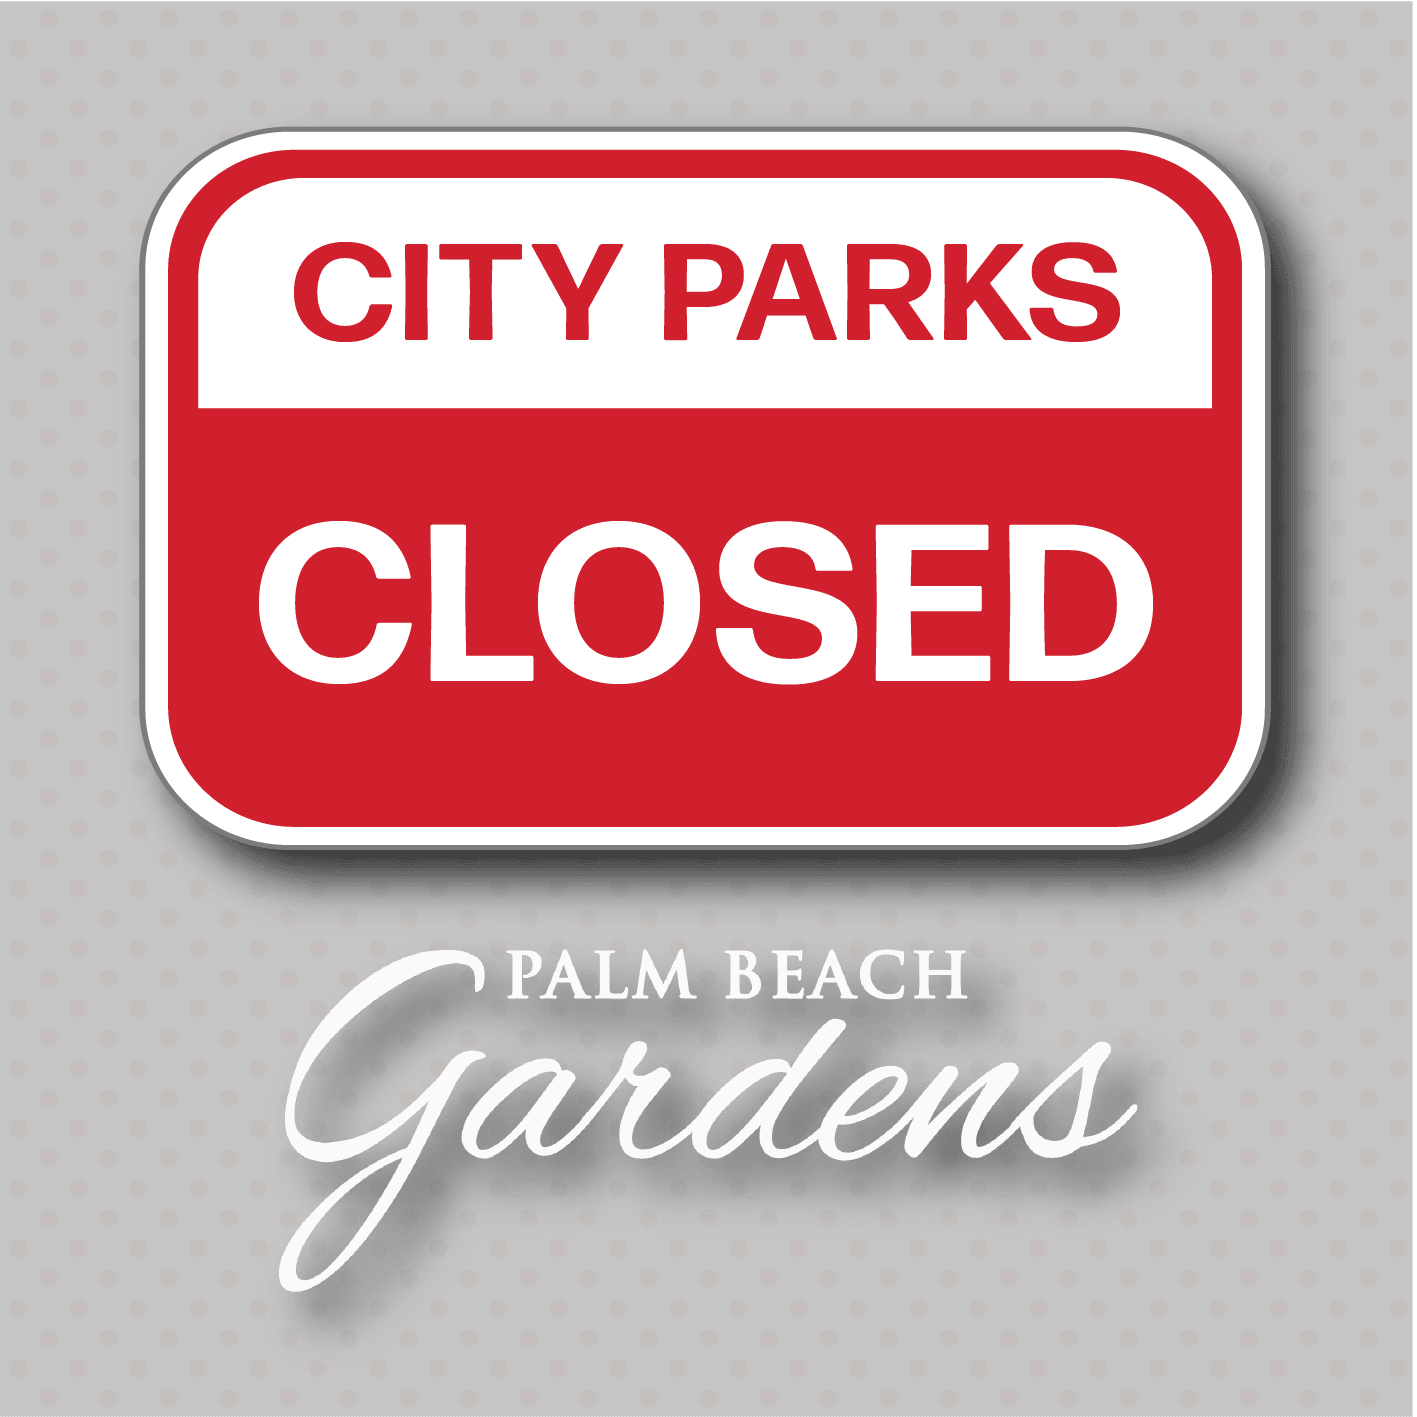 City Parks Closed